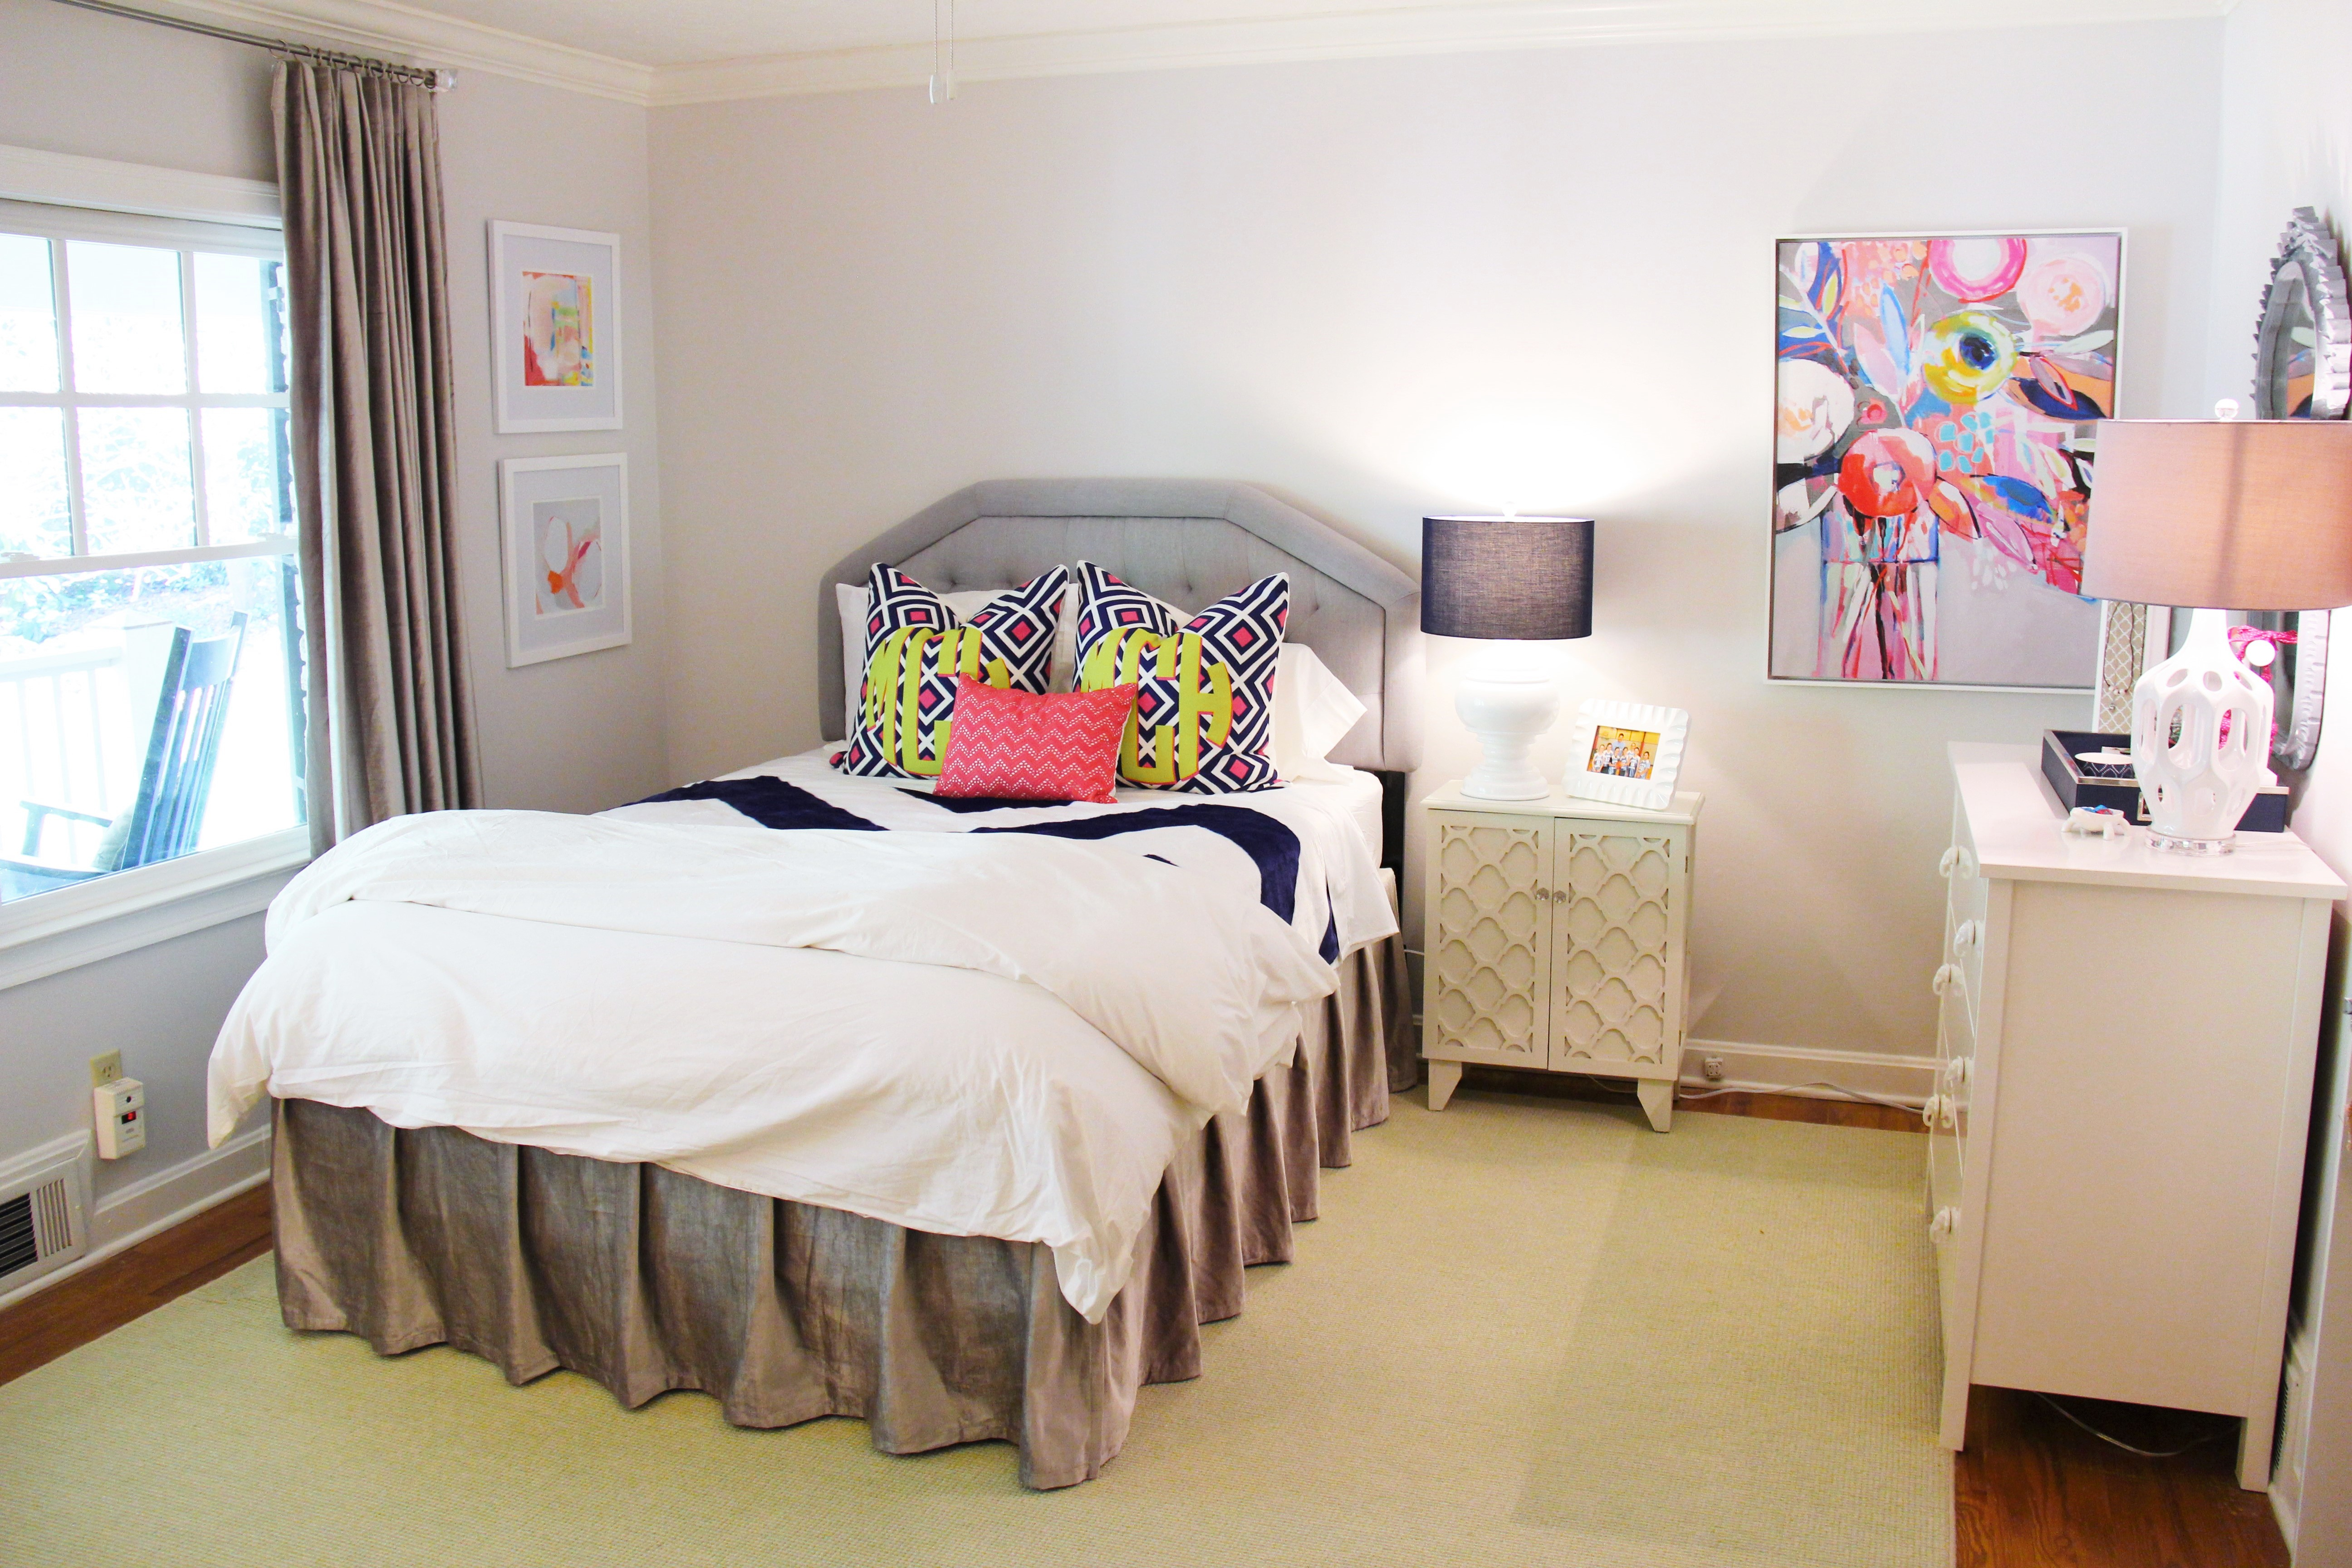 Modern Teen Bedroom Sumptuous Living with 13 Some of the Coolest Ideas How to Improve Modern Teen Bedrooms